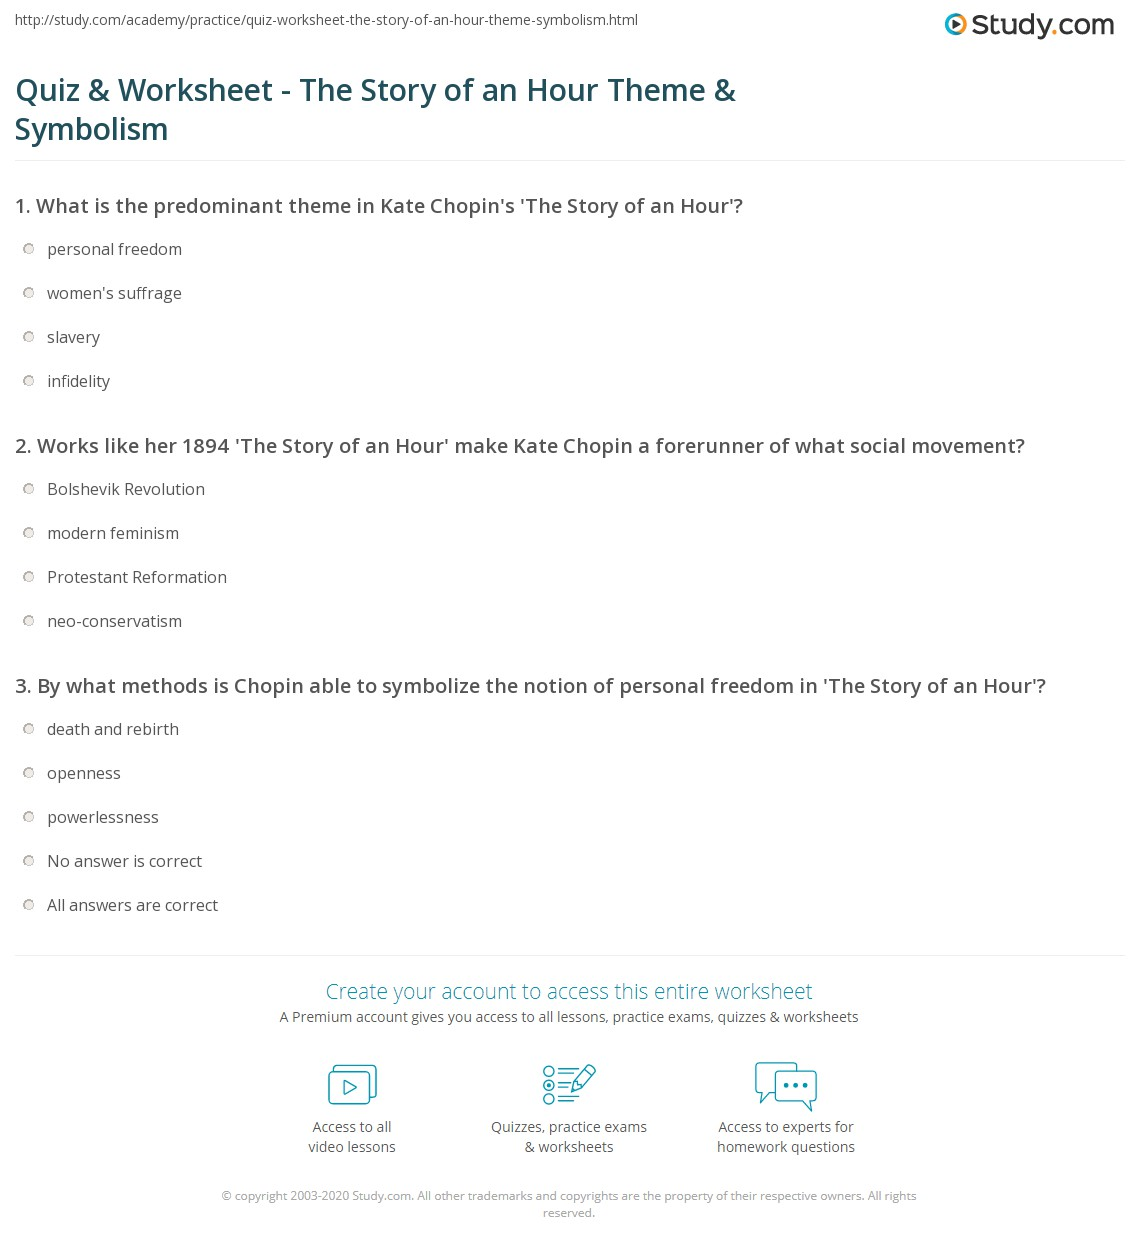 Worksheets Symbolism Worksheets quiz worksheet the story of an hour theme symbolism study com print worksheet